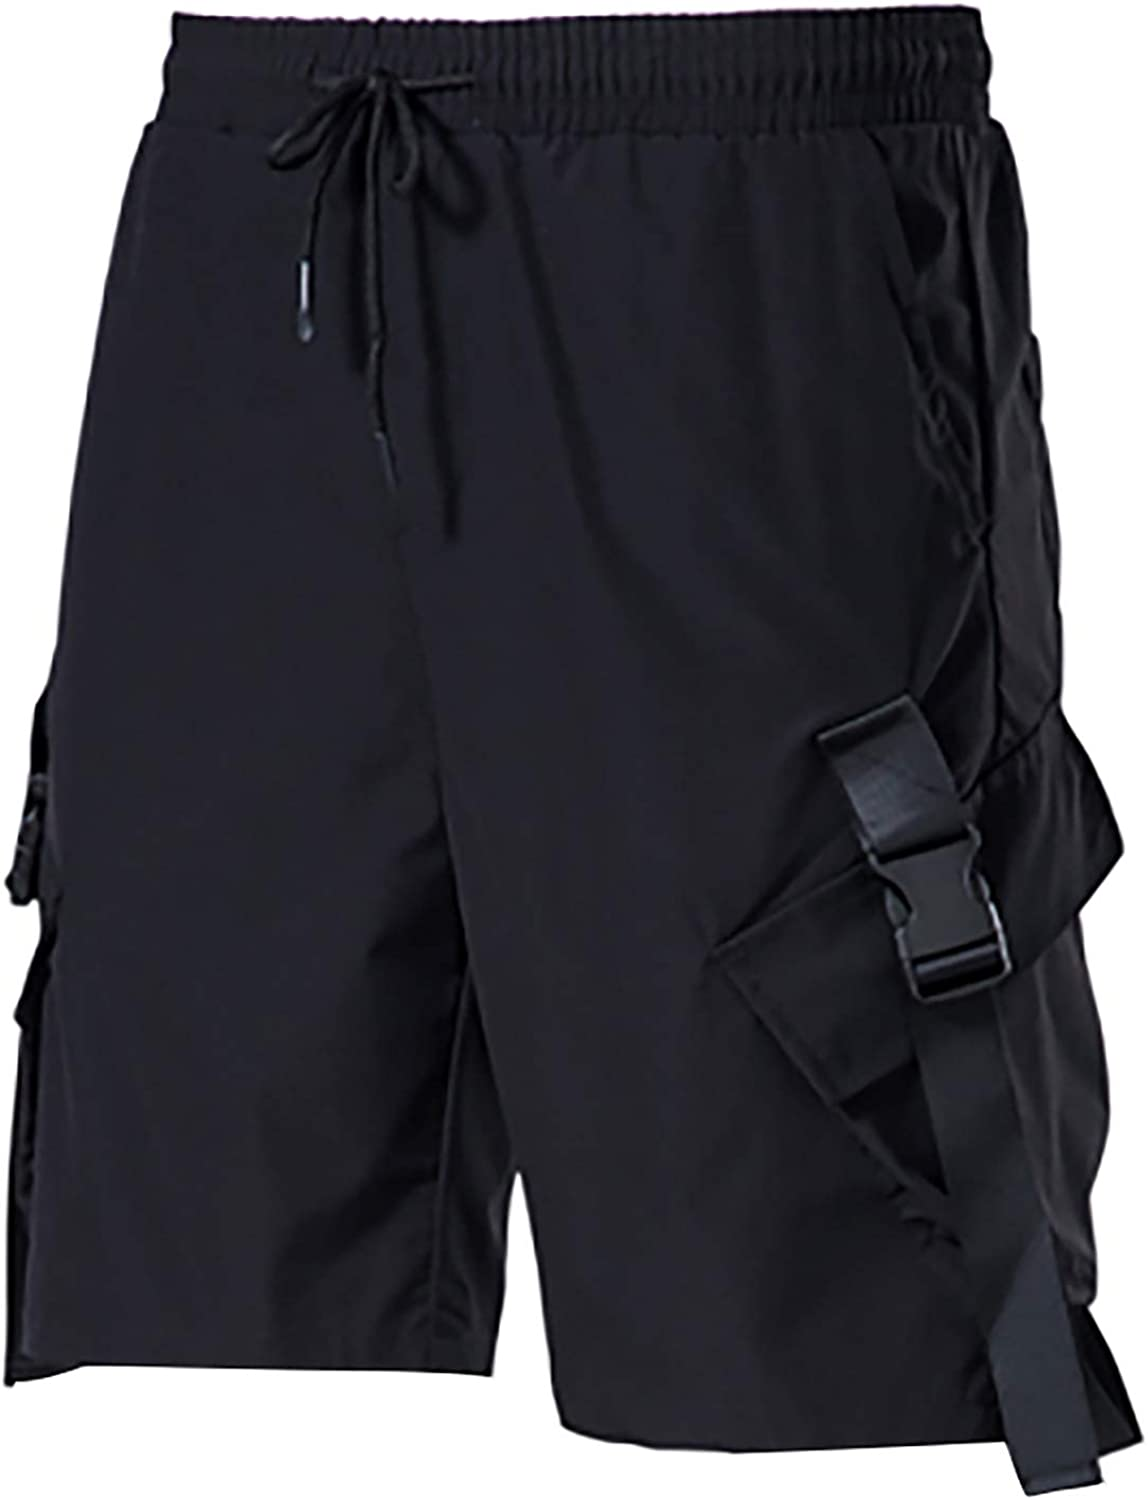 Tantisy Mens Casual Relaxed-fit Ultra Soft Sports Shorts Slim Elastic Waistband Cargo Shorts Tall Size Gym Track Shorts